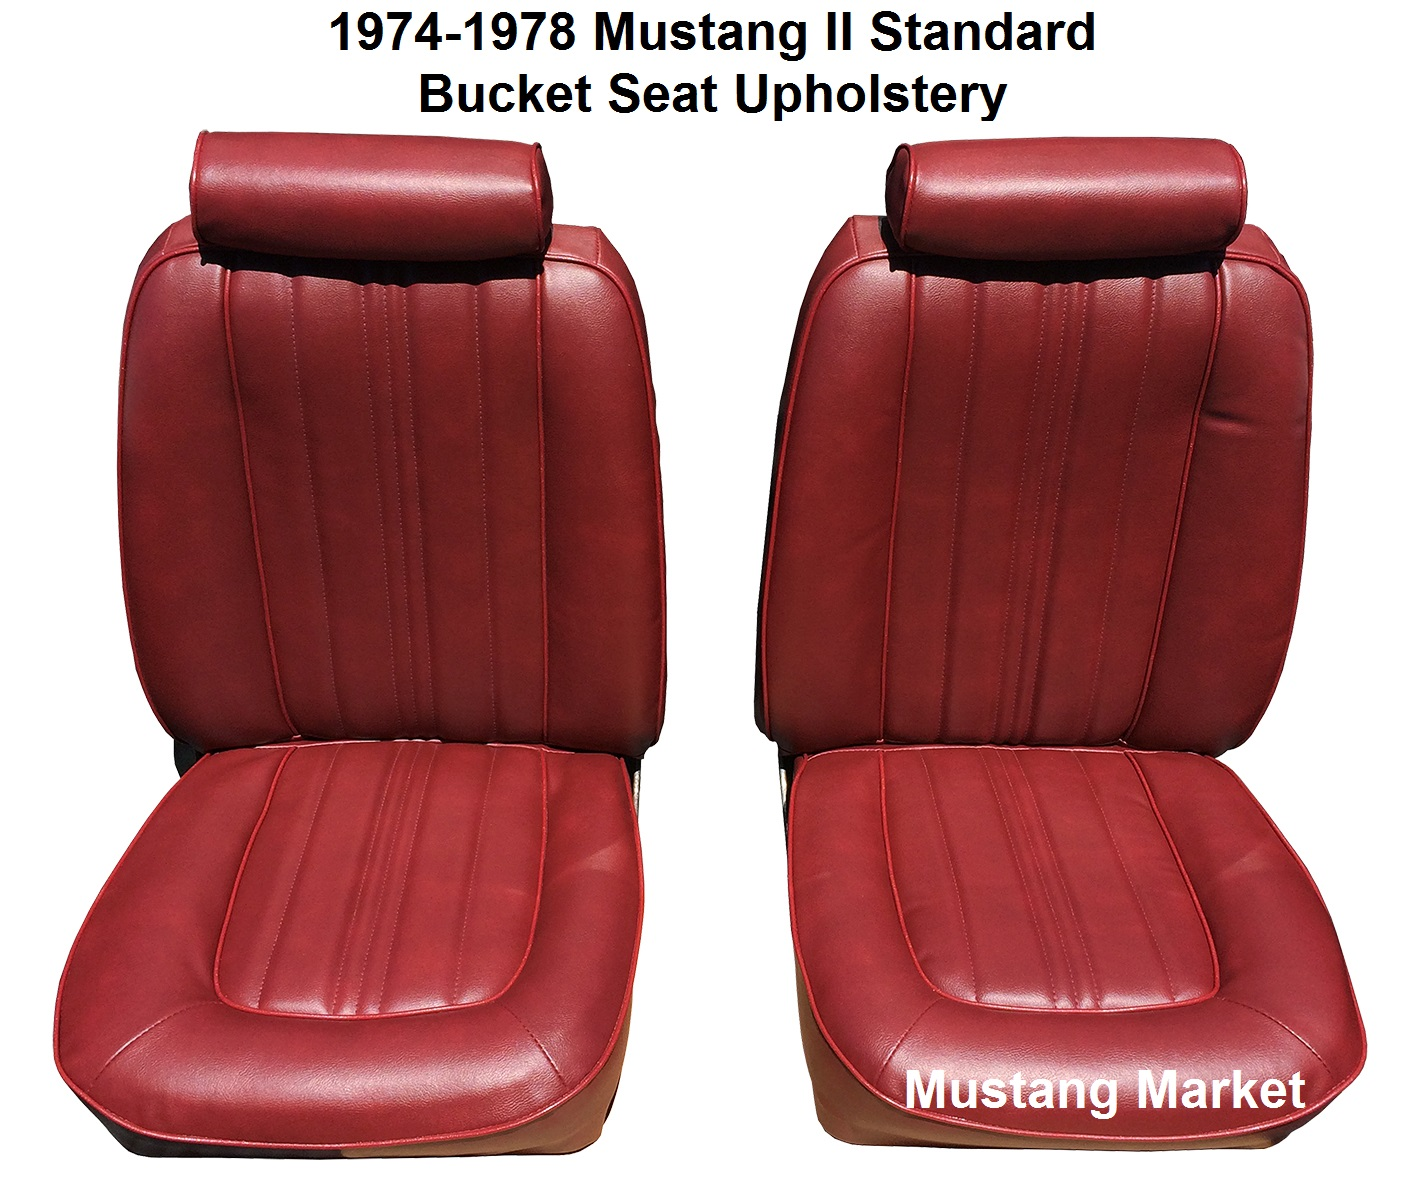 1974 1978 Mustang Standard Bucket Seat Upholstery